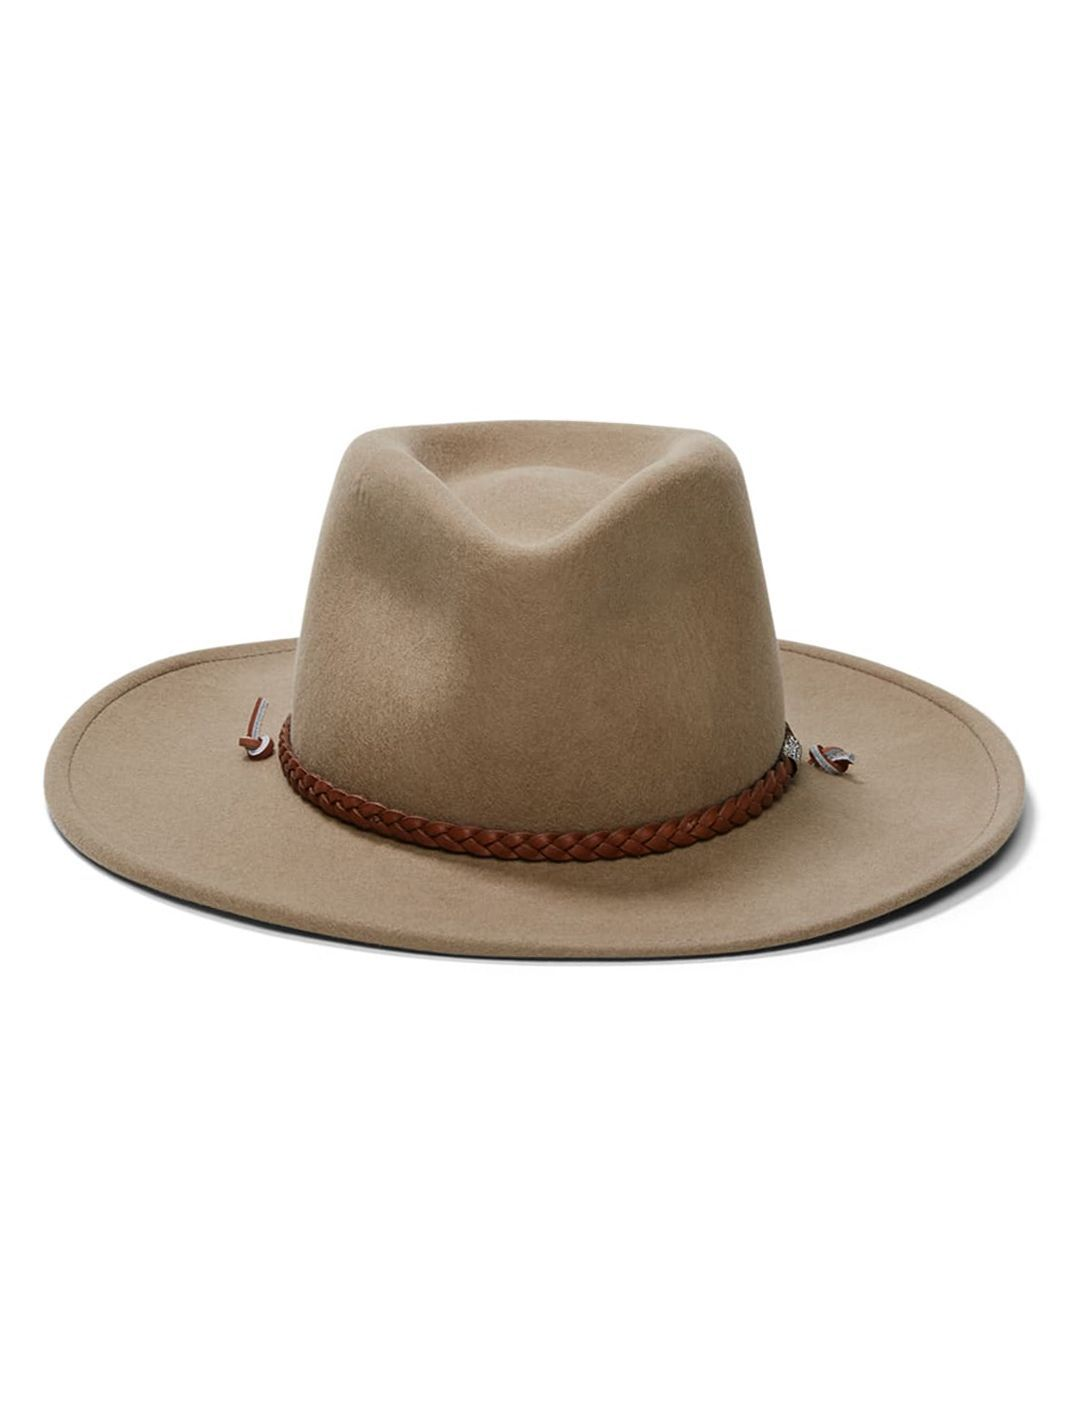 Stetson Men s Sagebrush Outdoor Hat OWSGBH-8134. Details 98b8b56186b